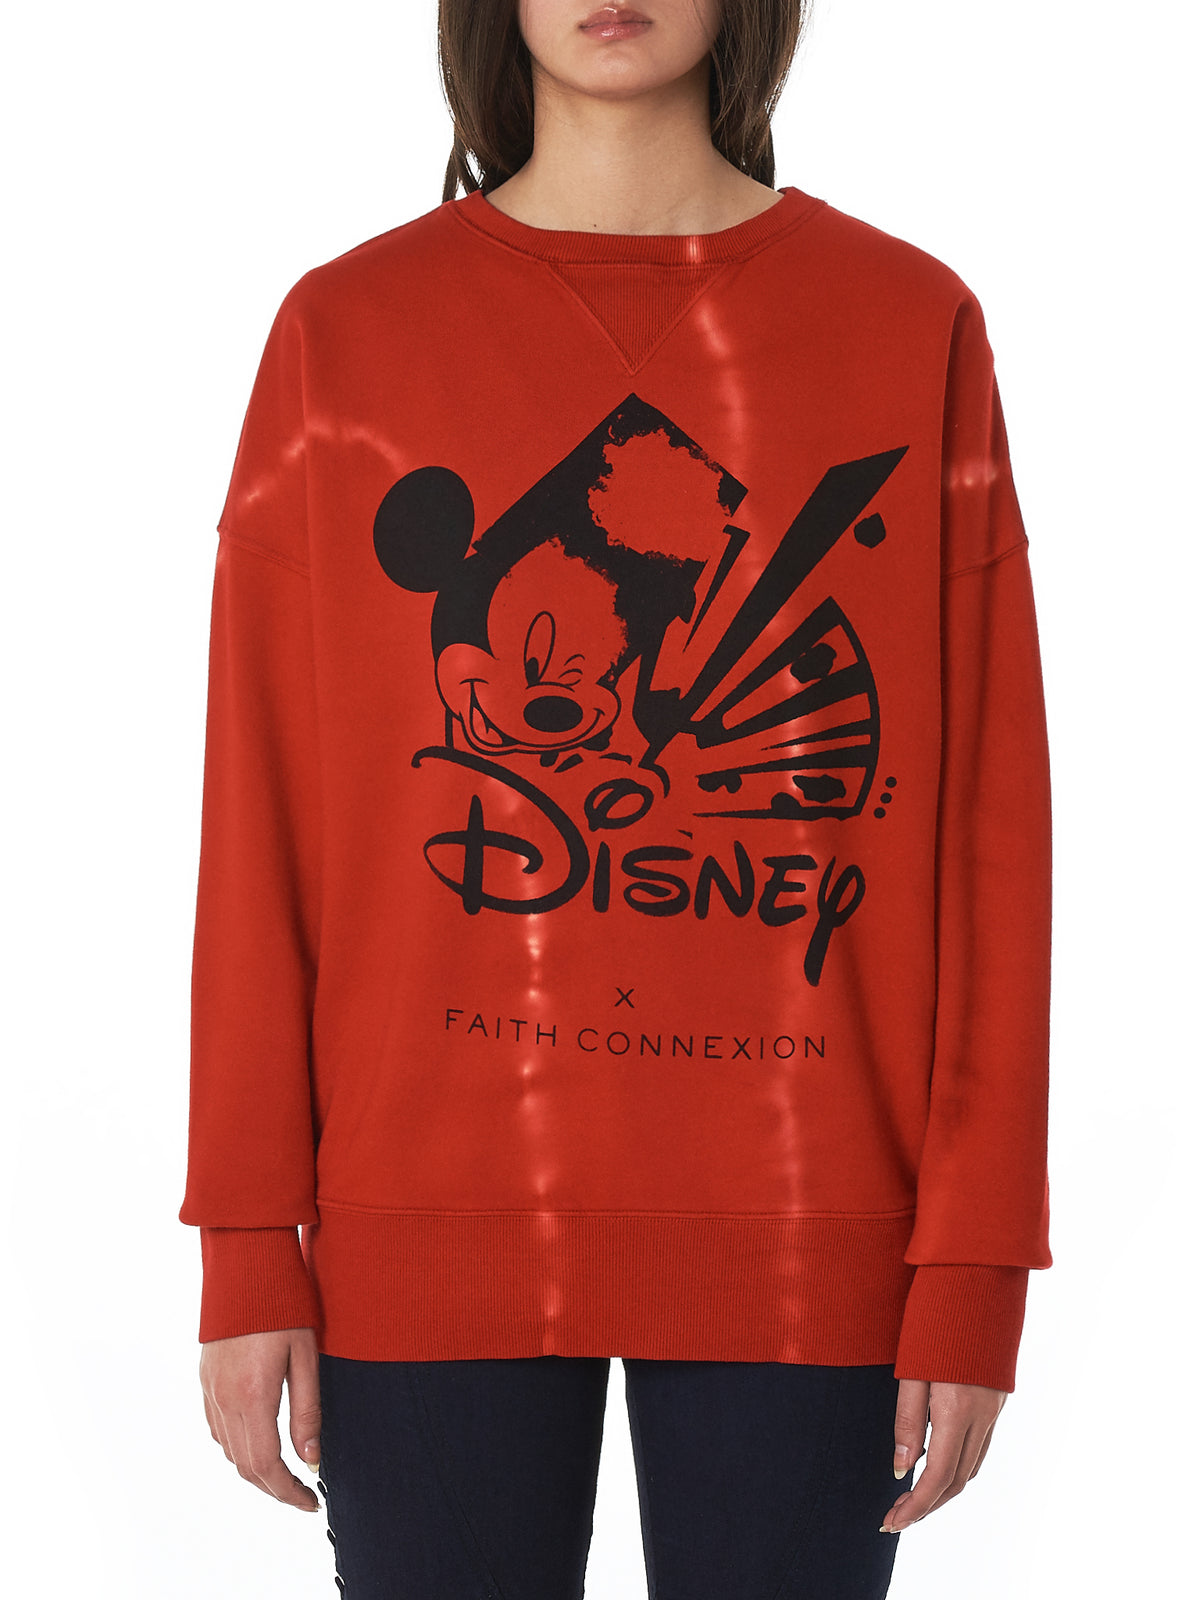 Faith Connexion x Disney Sweater - Hlorenzo Front